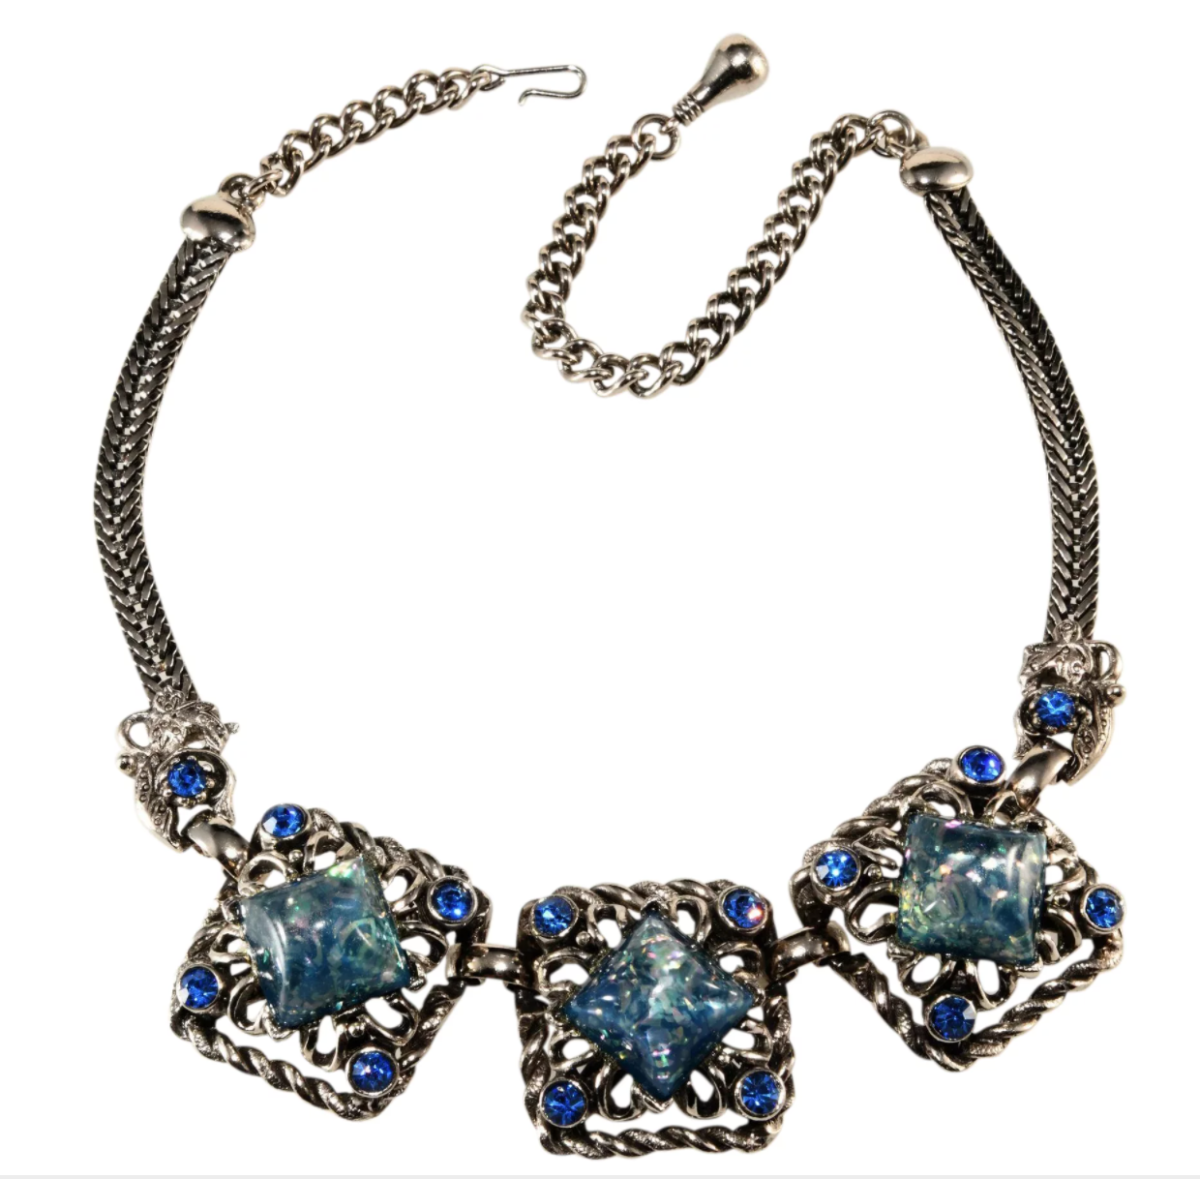 Selro necklace